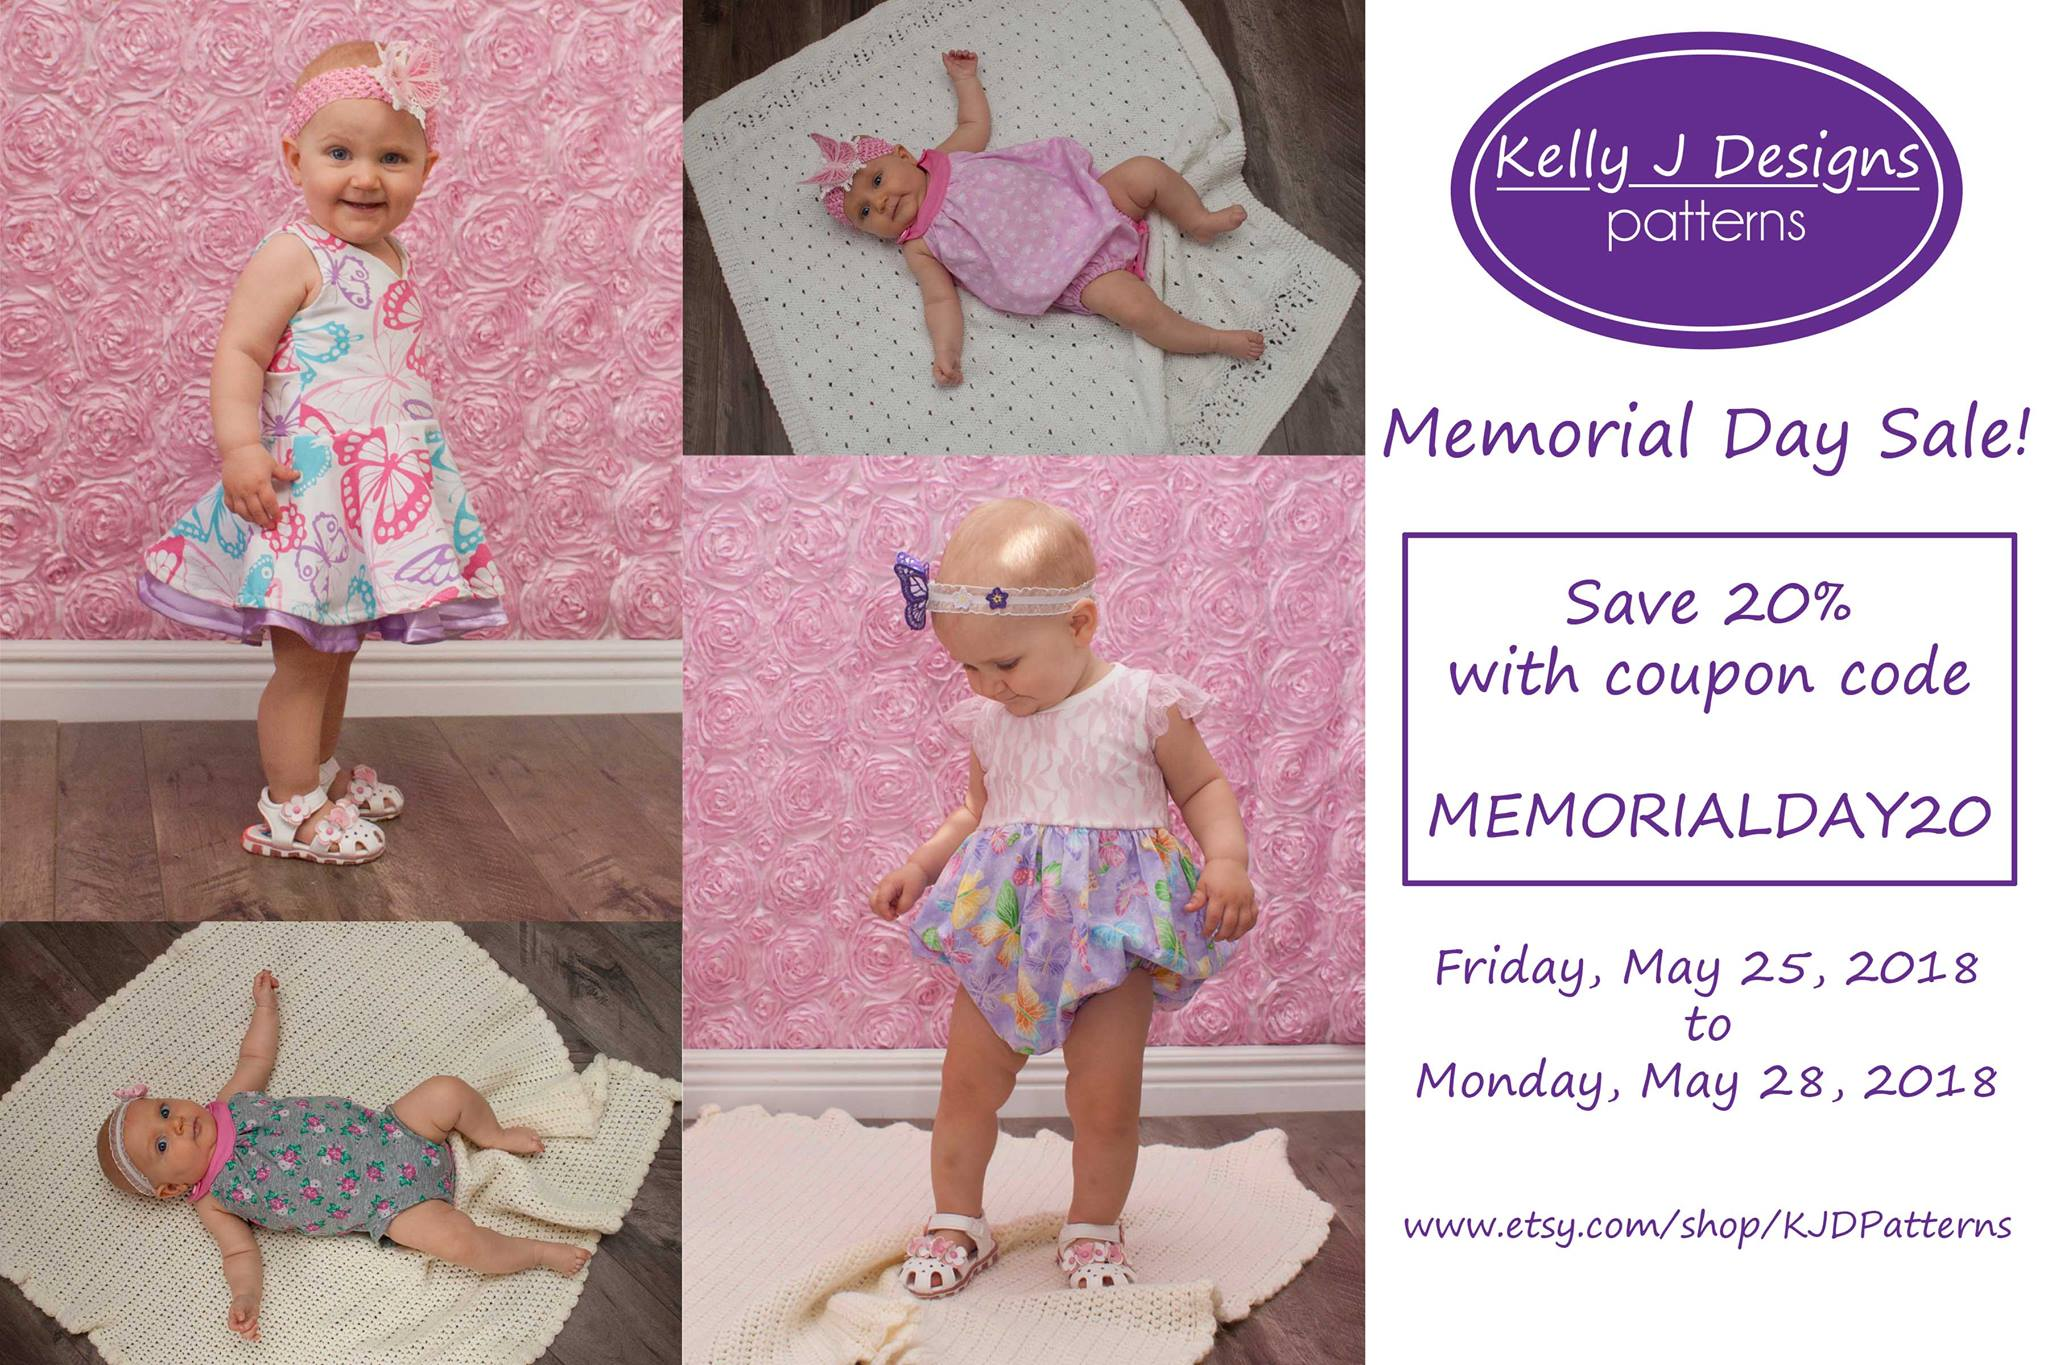 Kelly J Designs Memorial Day Sewing Pattern Sale